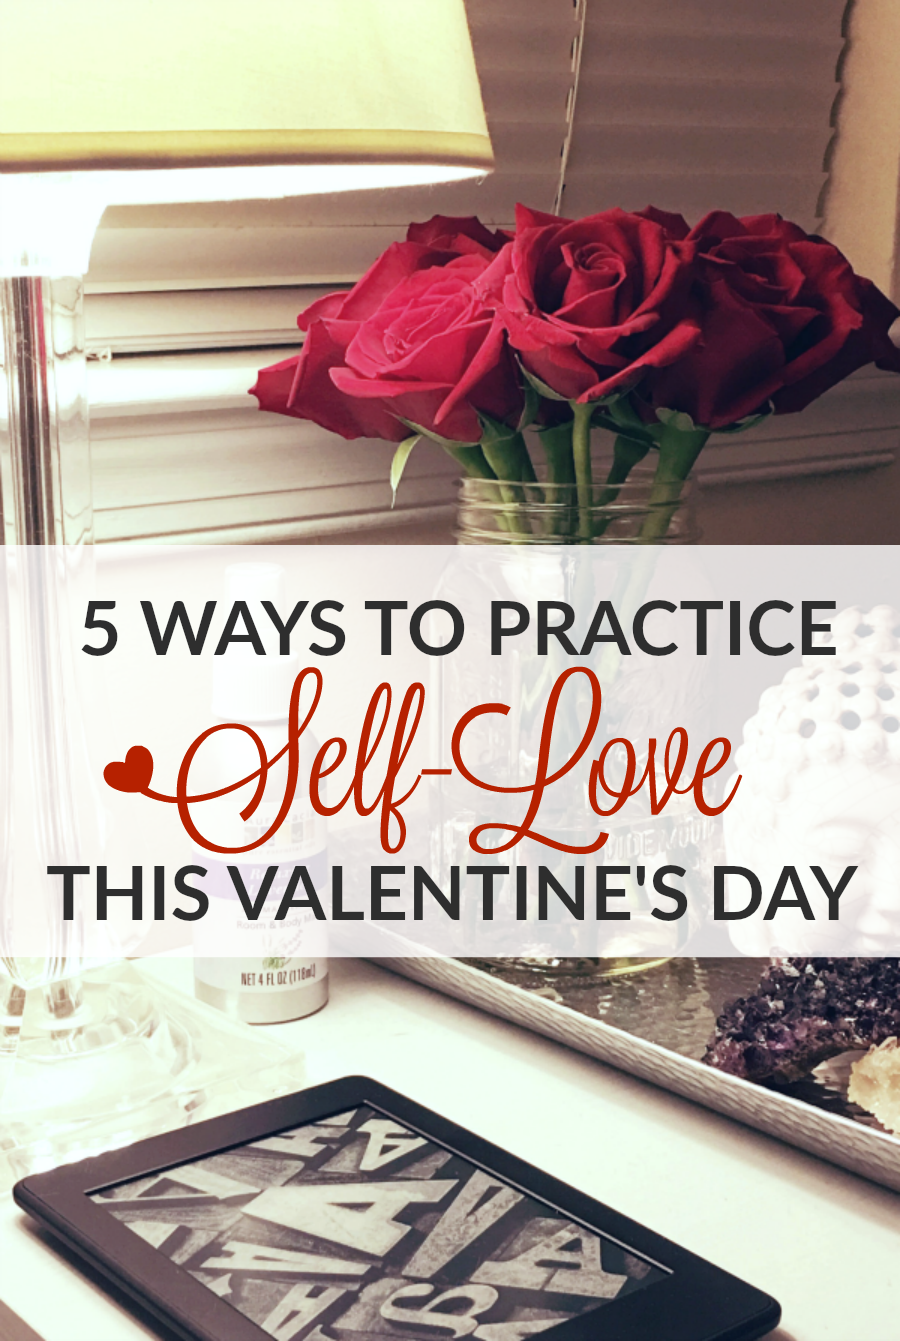 ways to practice self-love